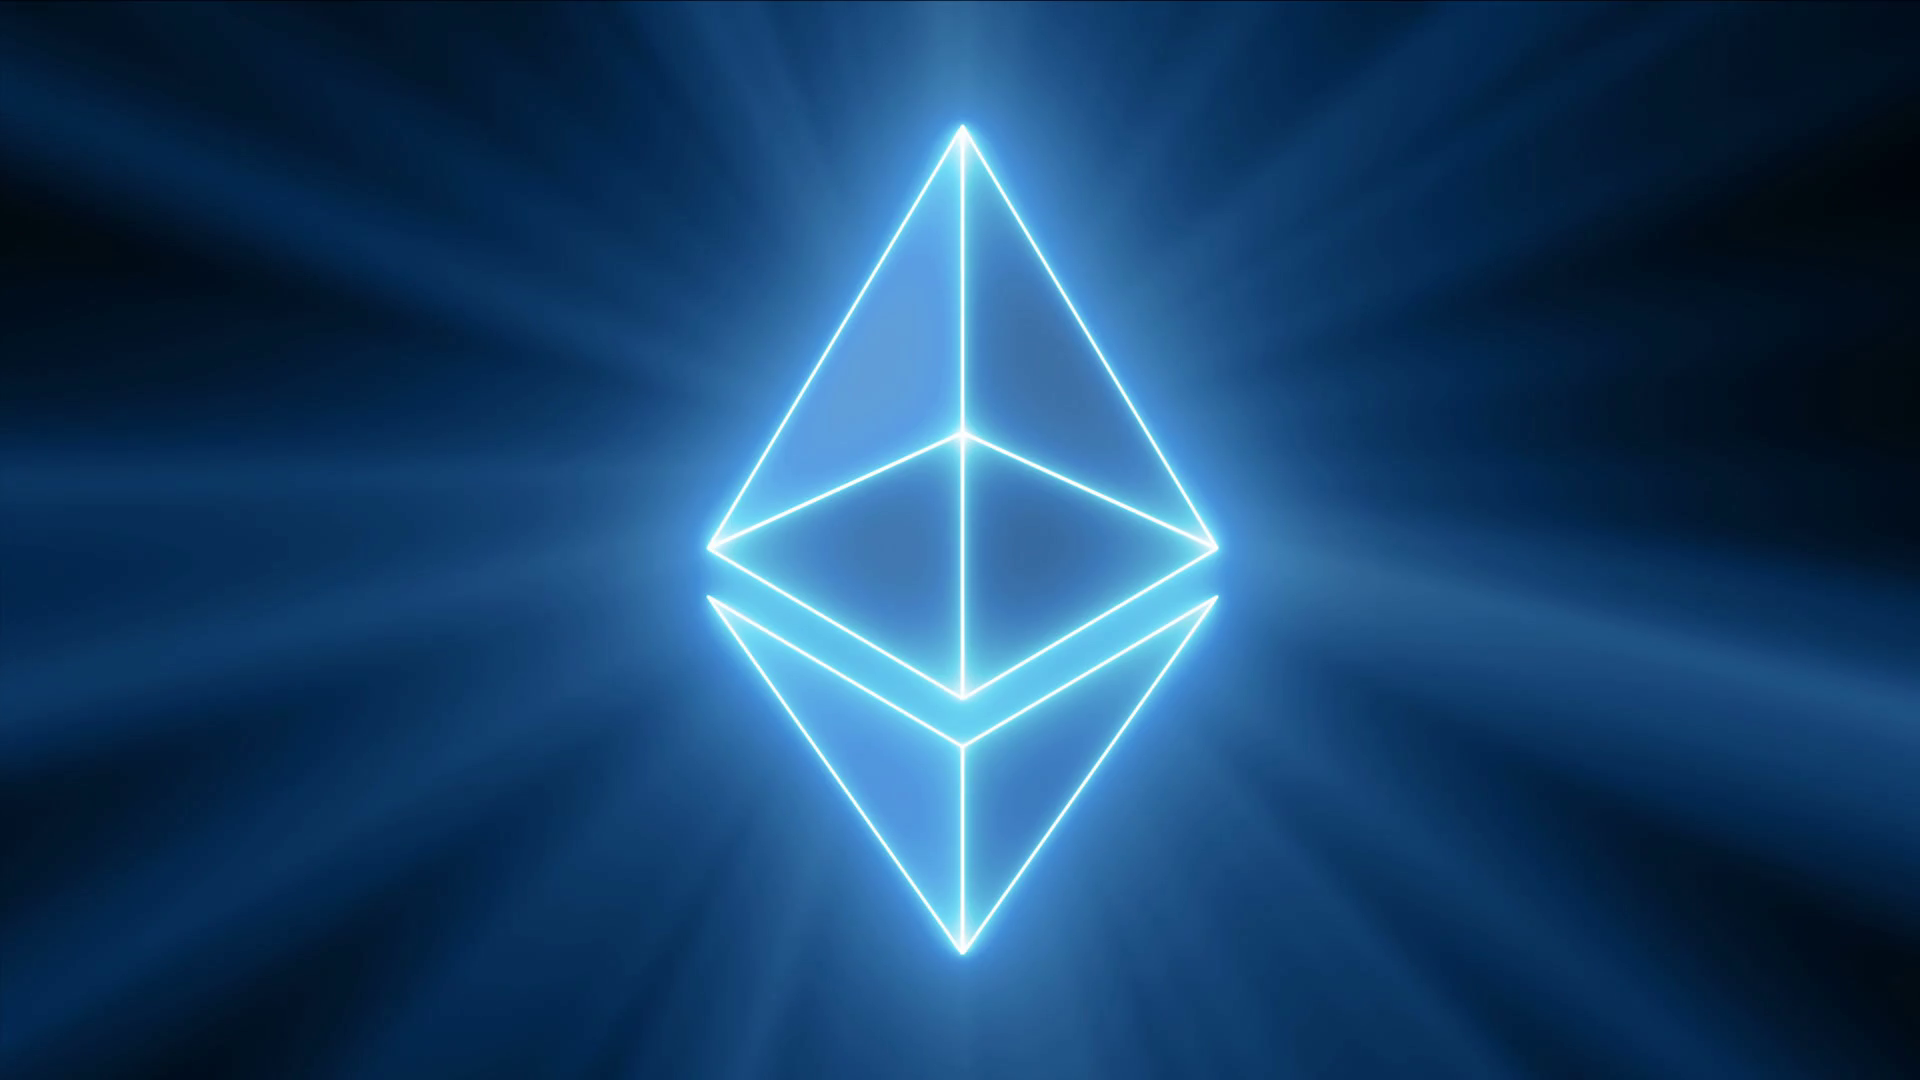 Ethereum Wallpaper 93 images in Collection Page 1 1920x1080